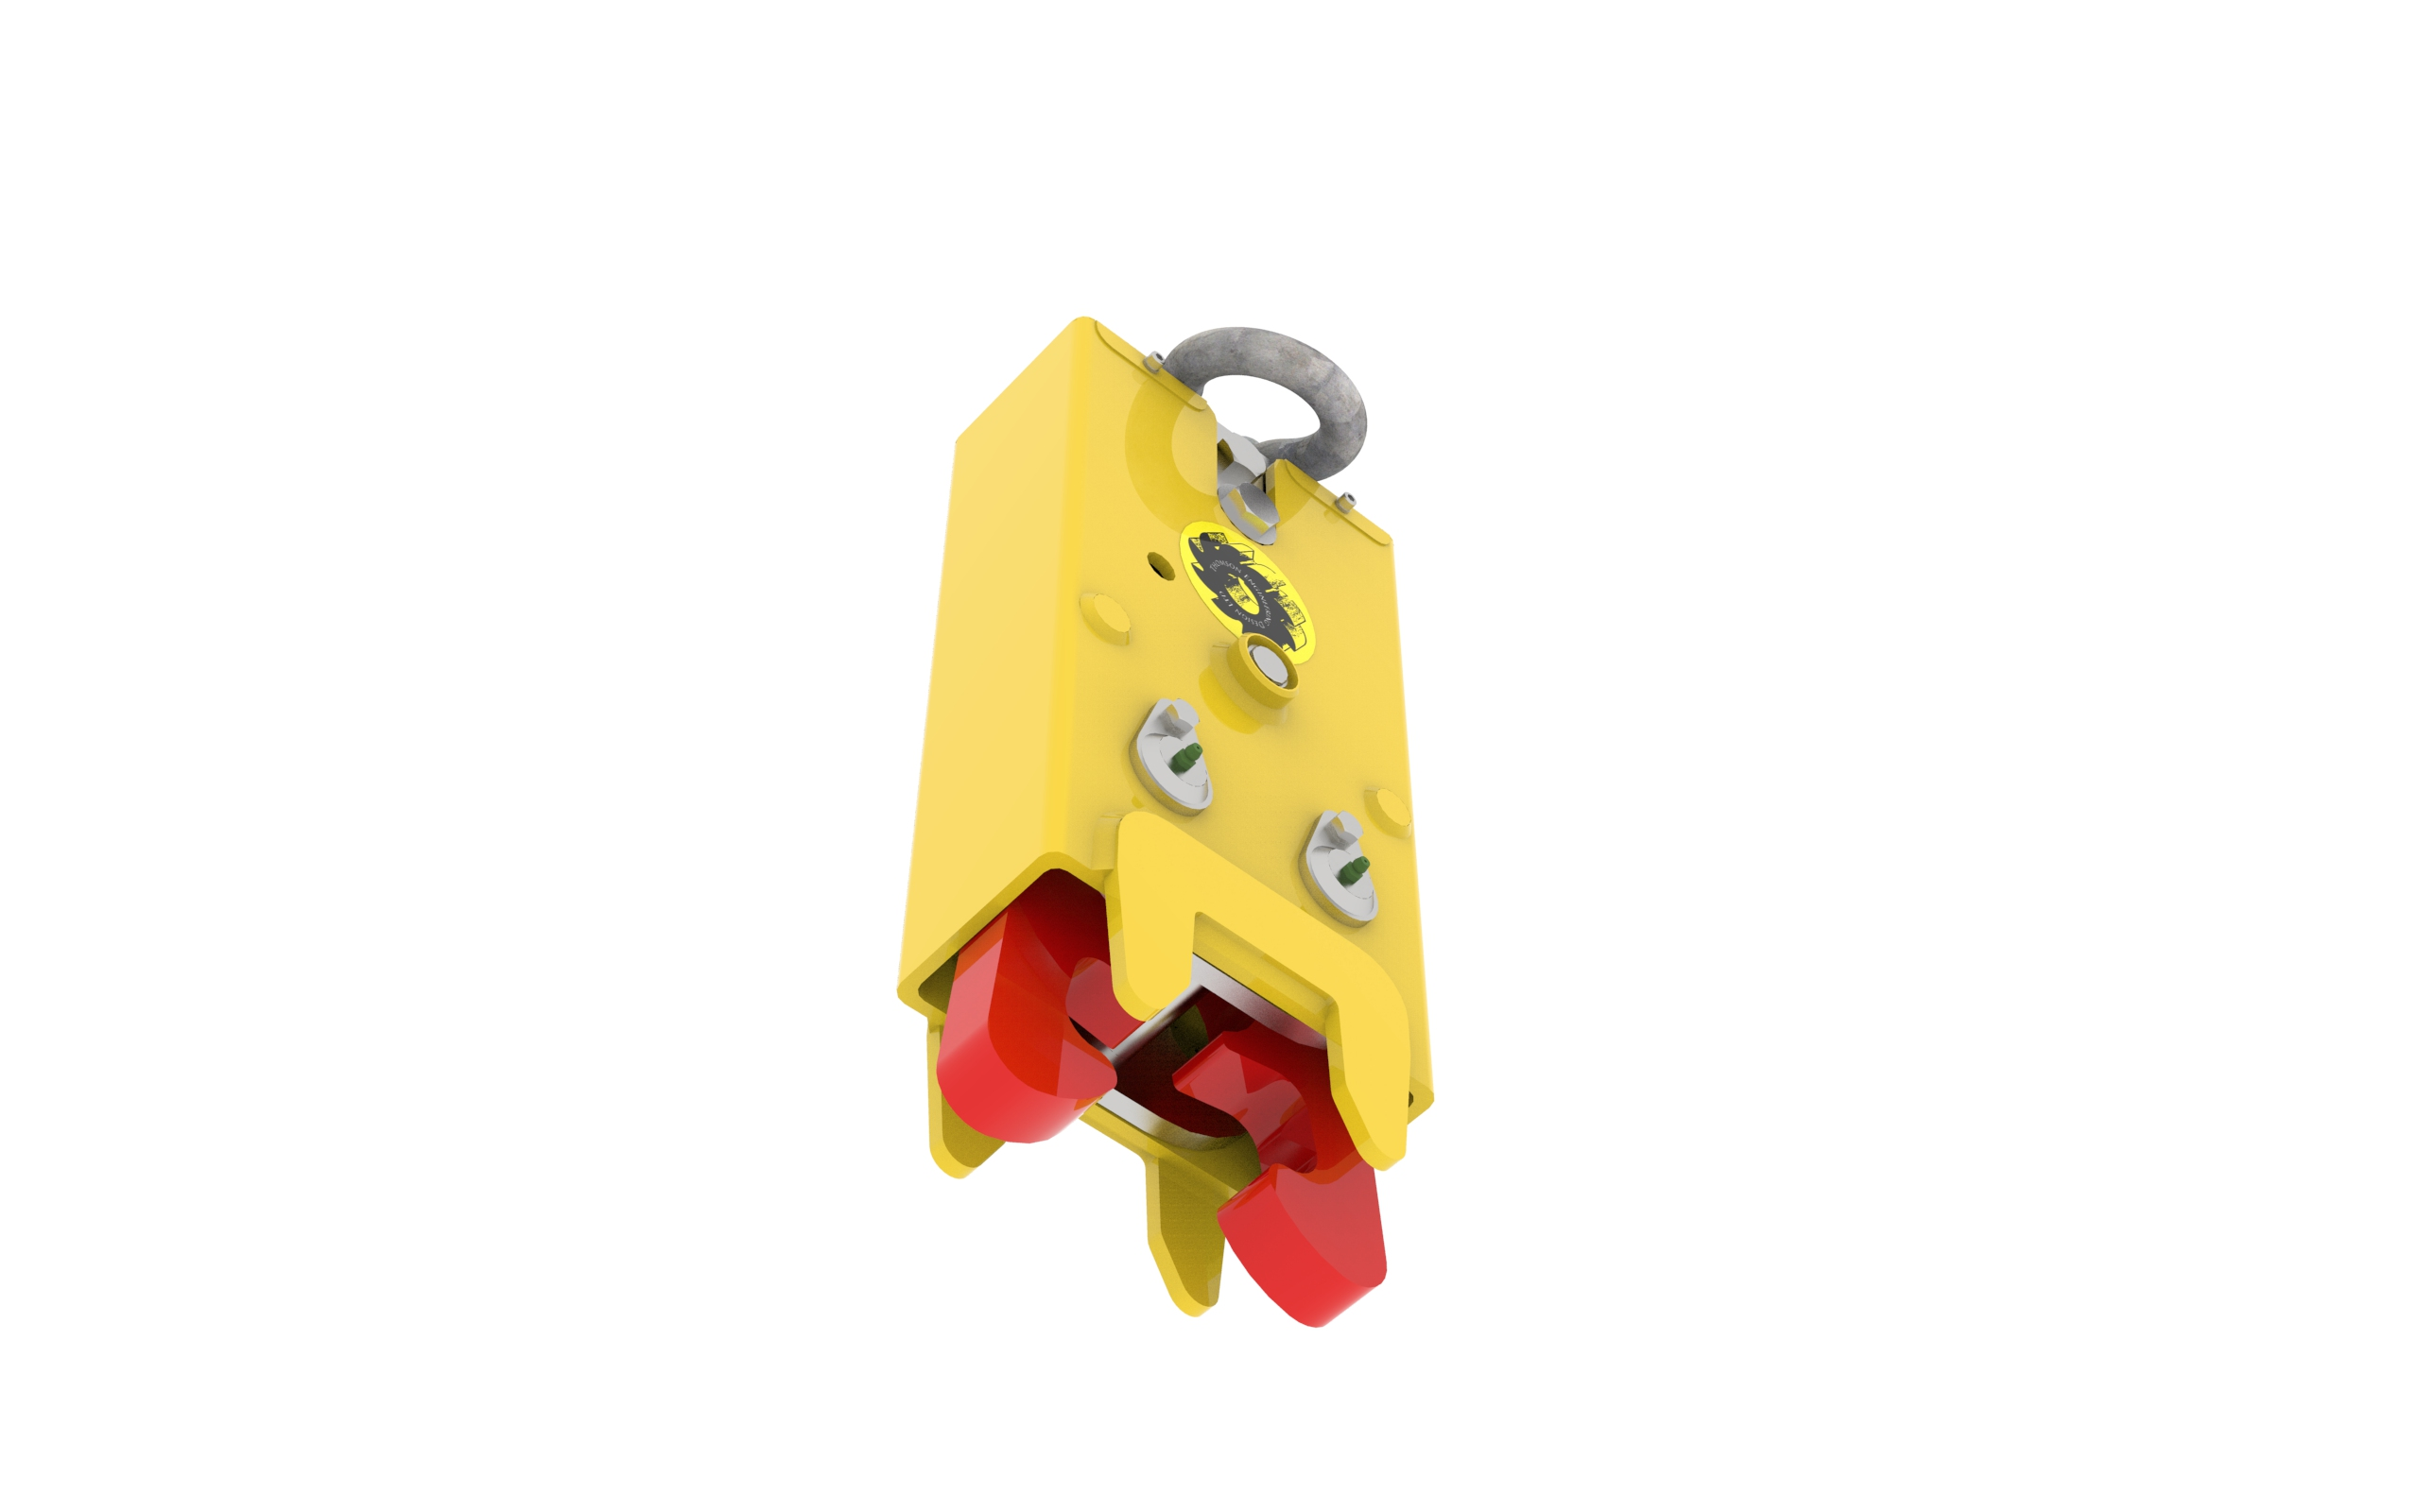 Automatic Autolok Rail Grab for technical industries